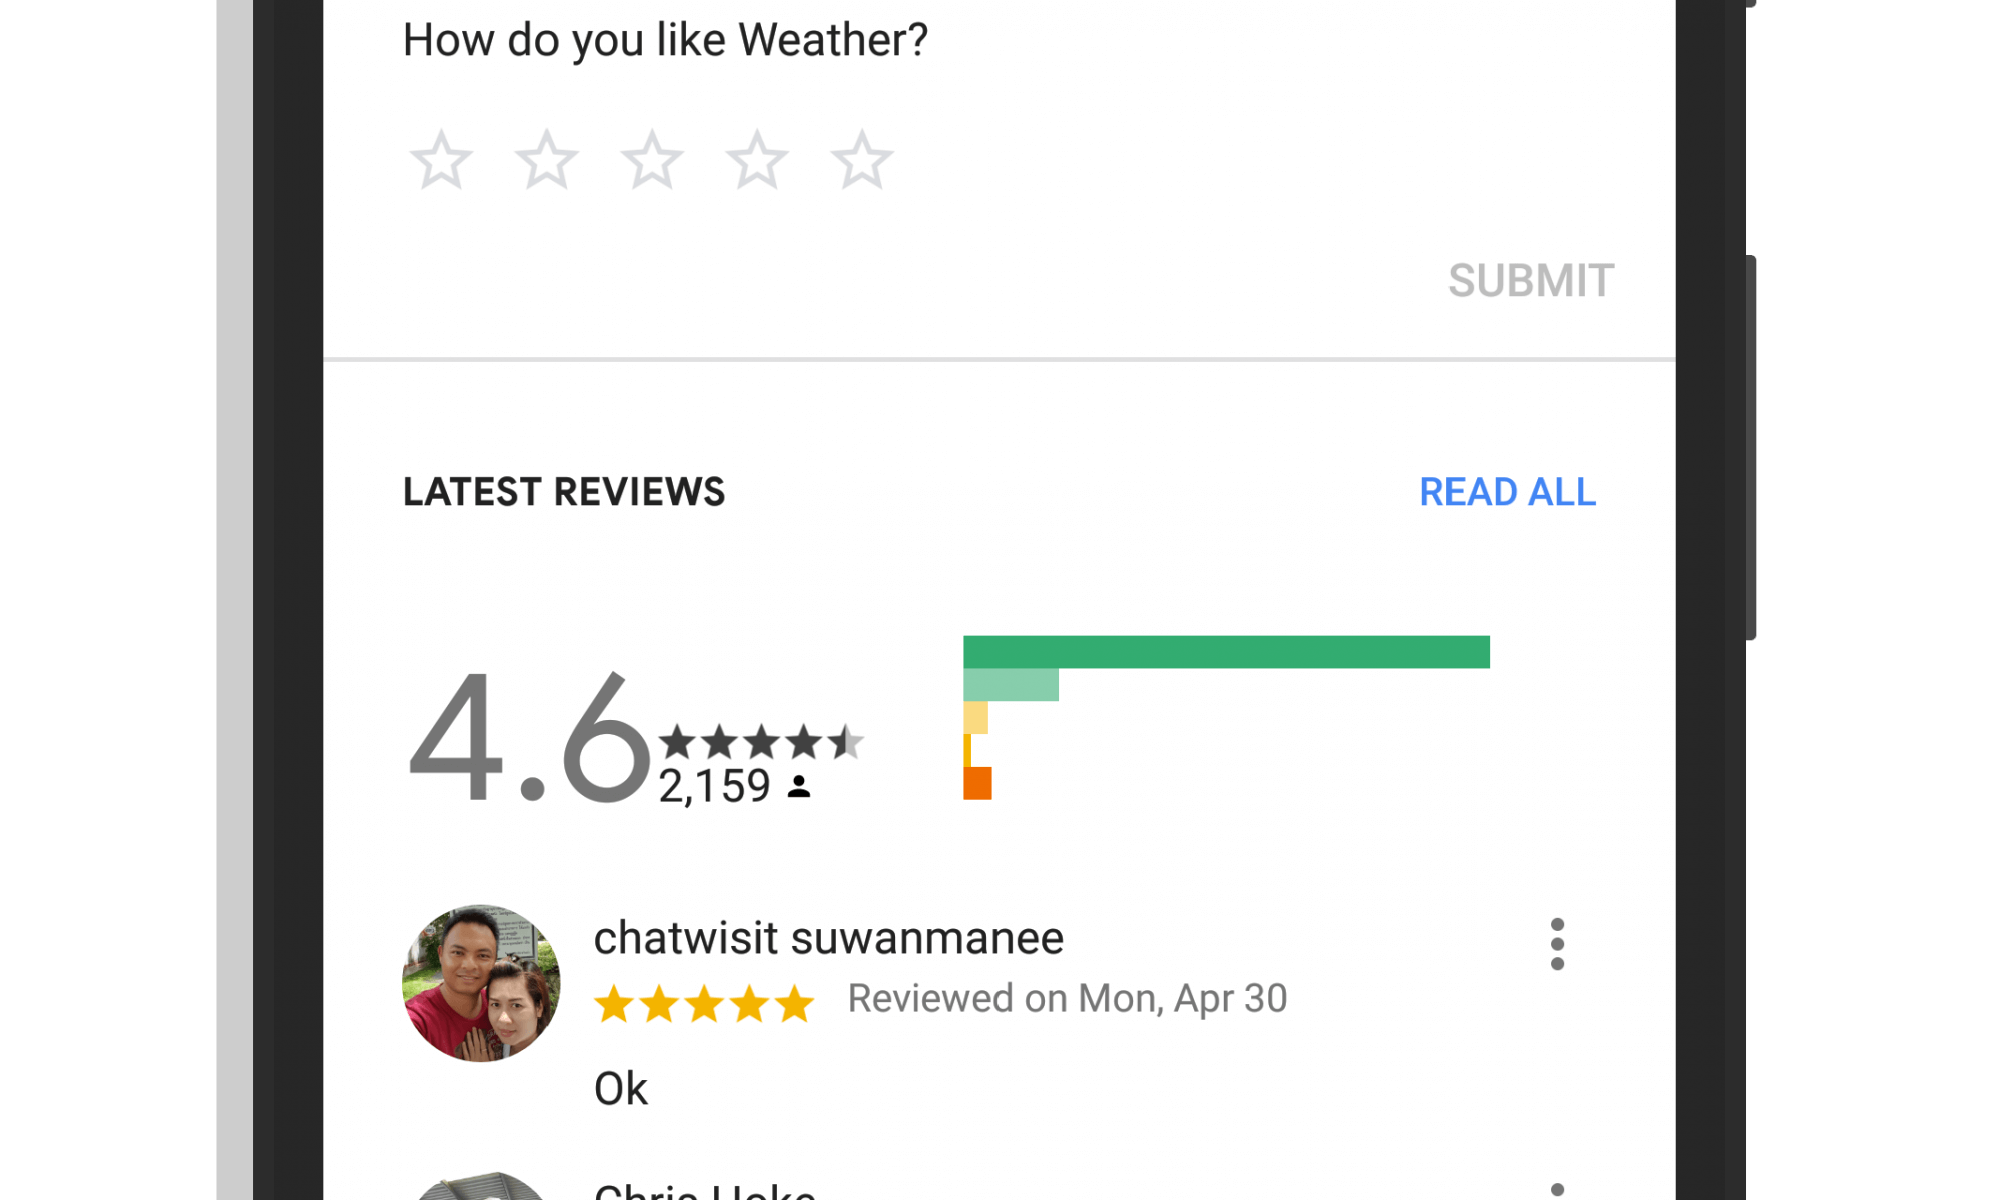 Rating of Services in Google Assistant